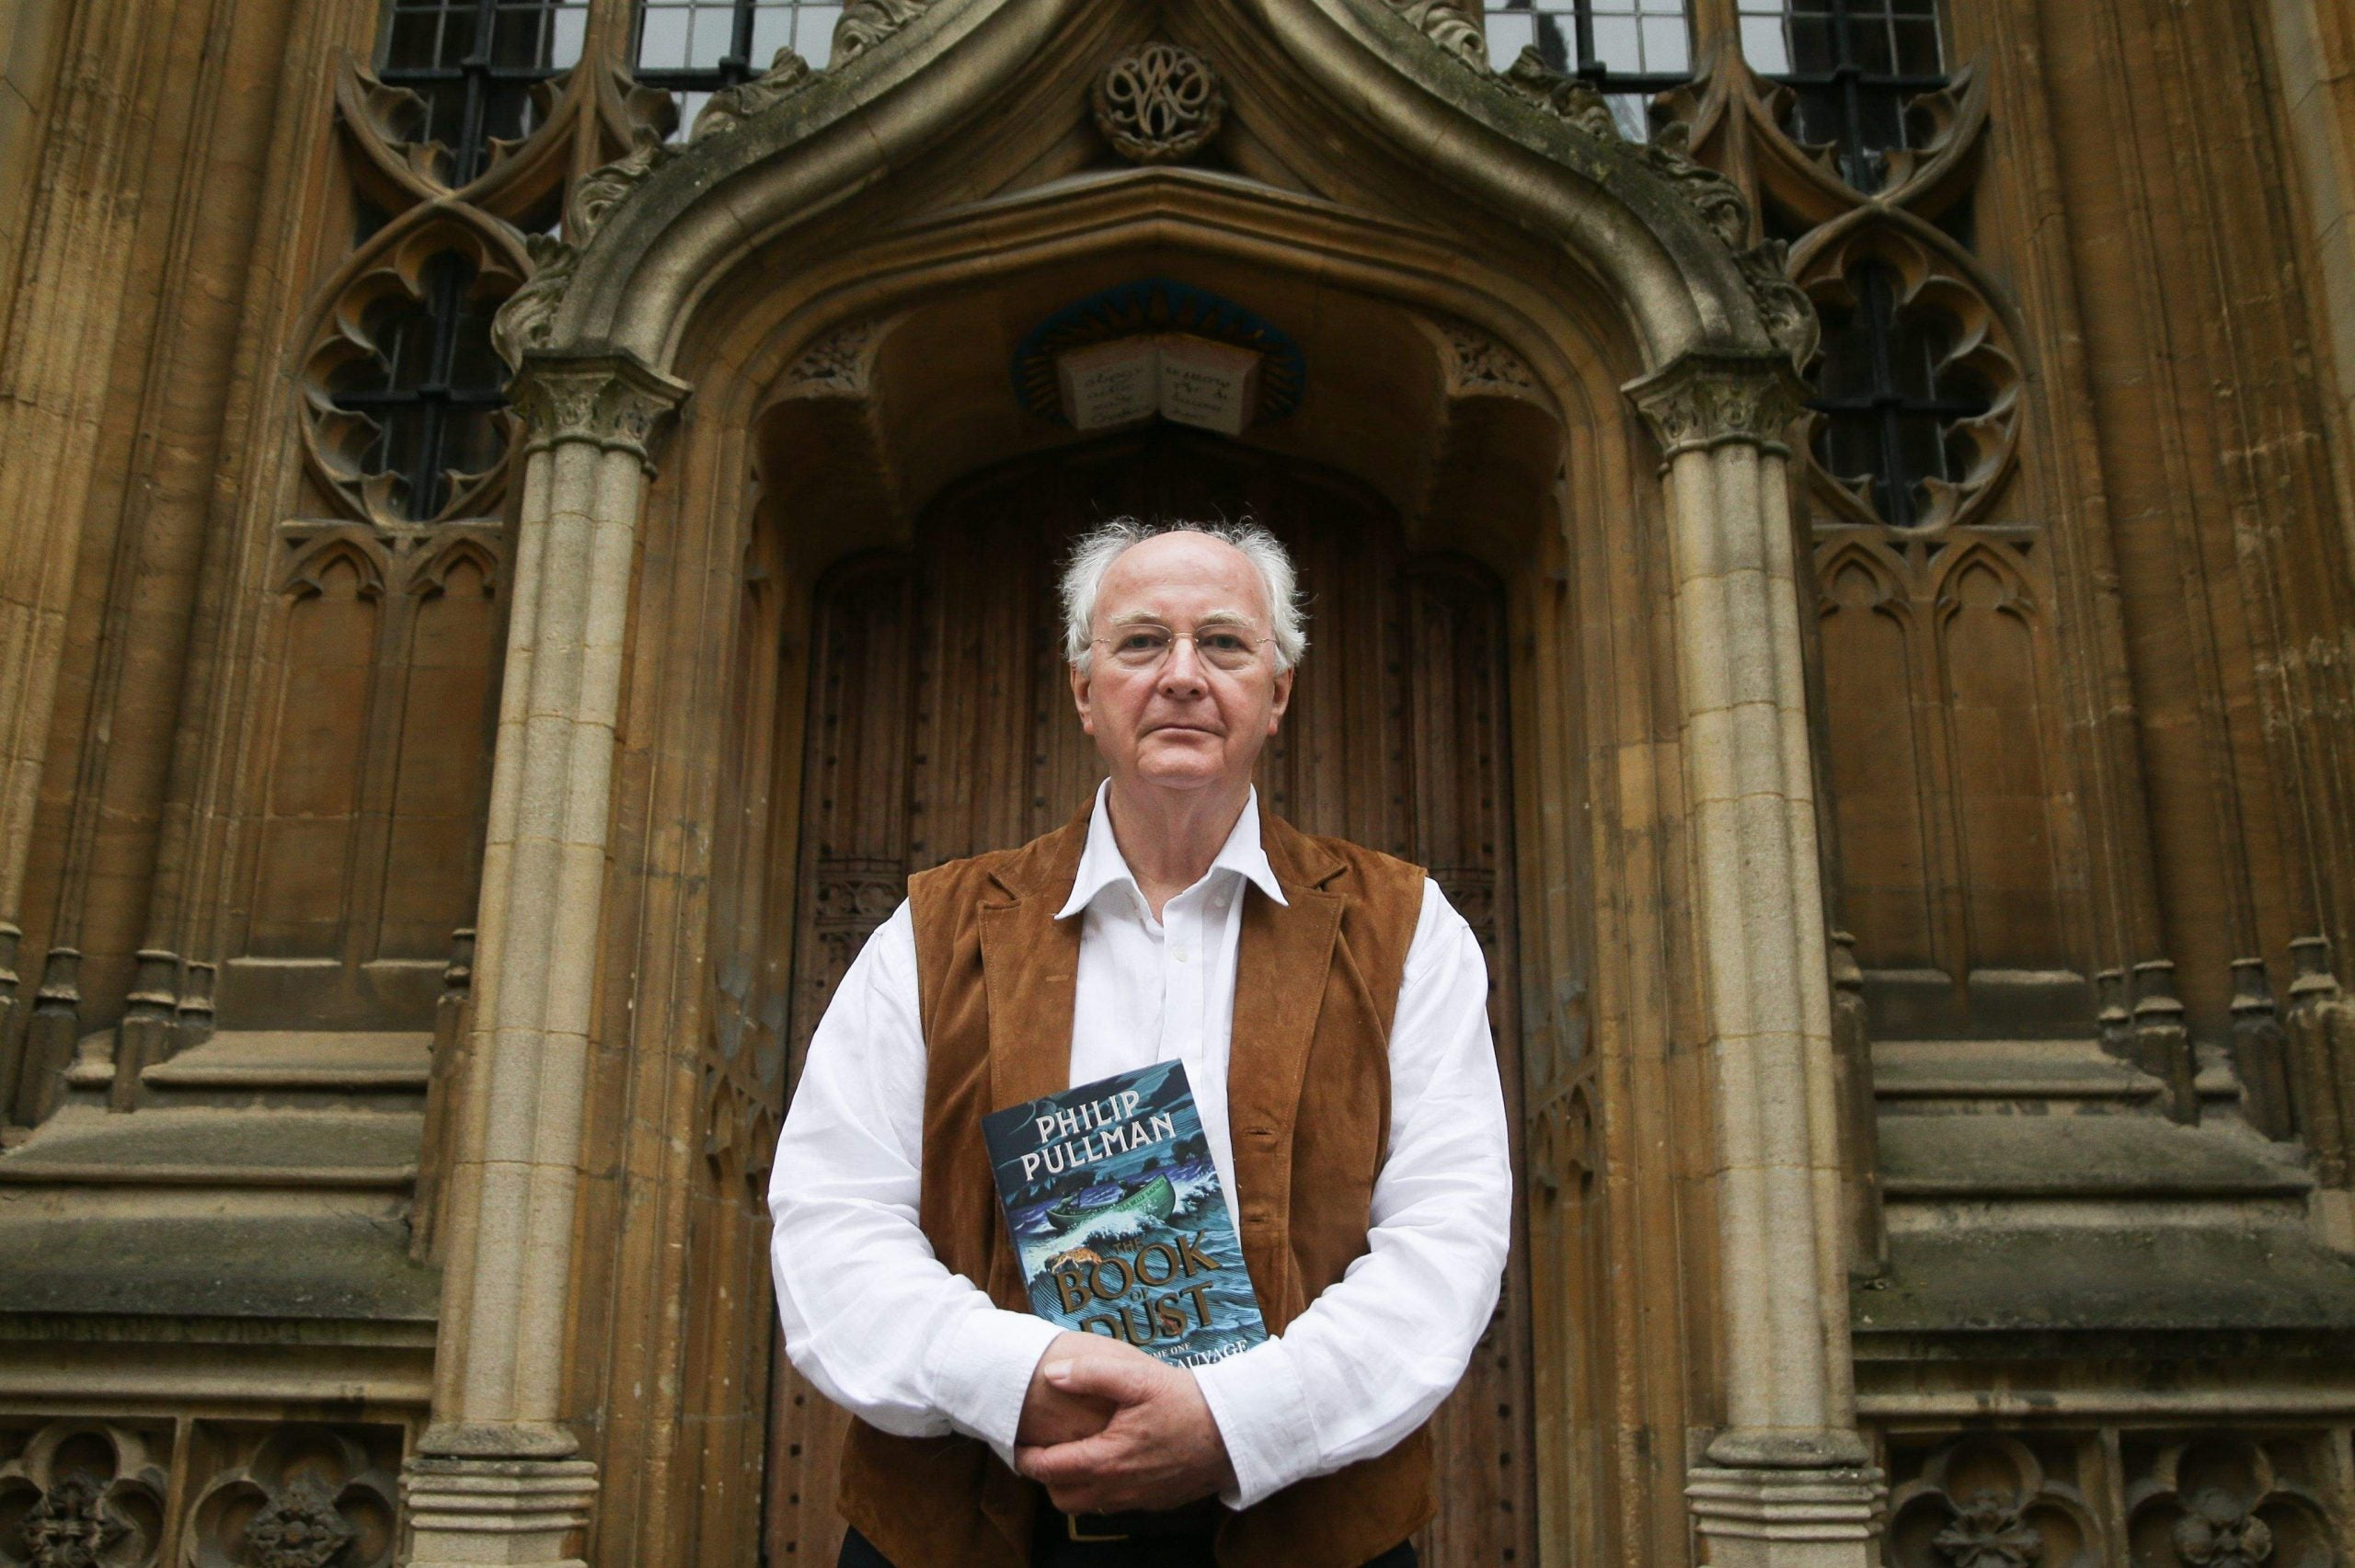 The Secret Commonwealth displays Philip Pullman's miraculous gifts for storytelling